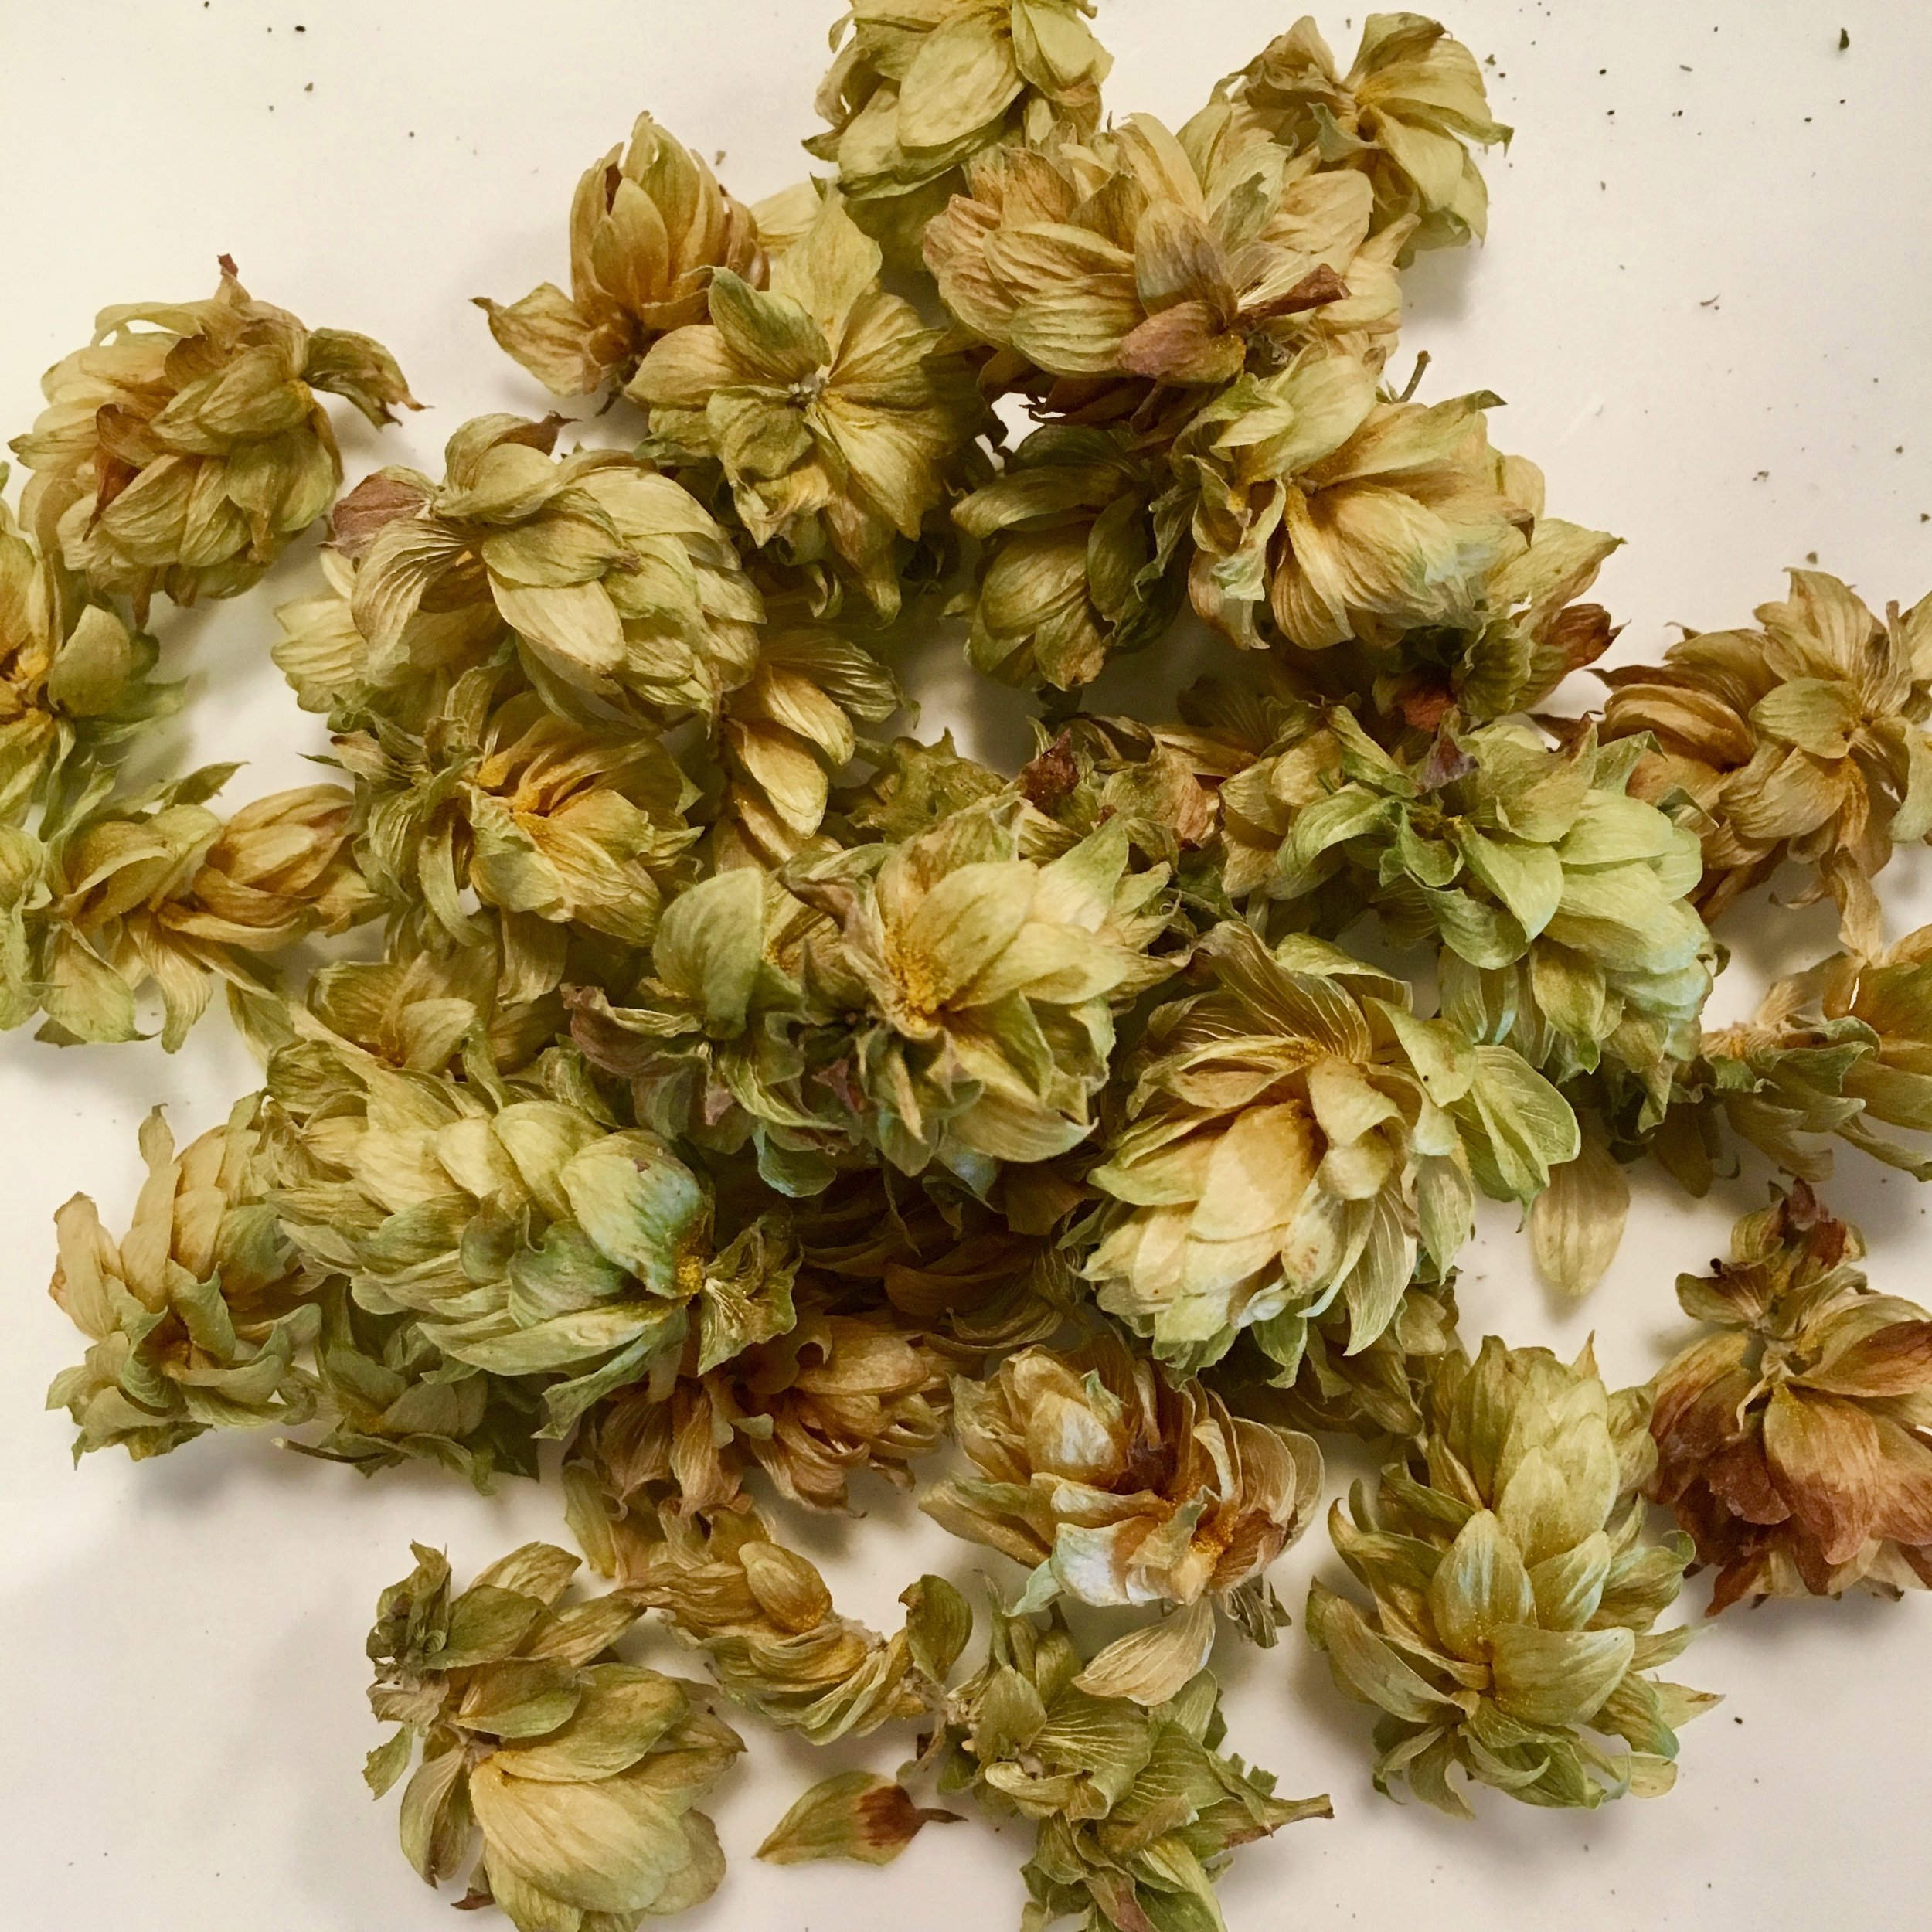 Hops are waiting to pull the truth out of you…